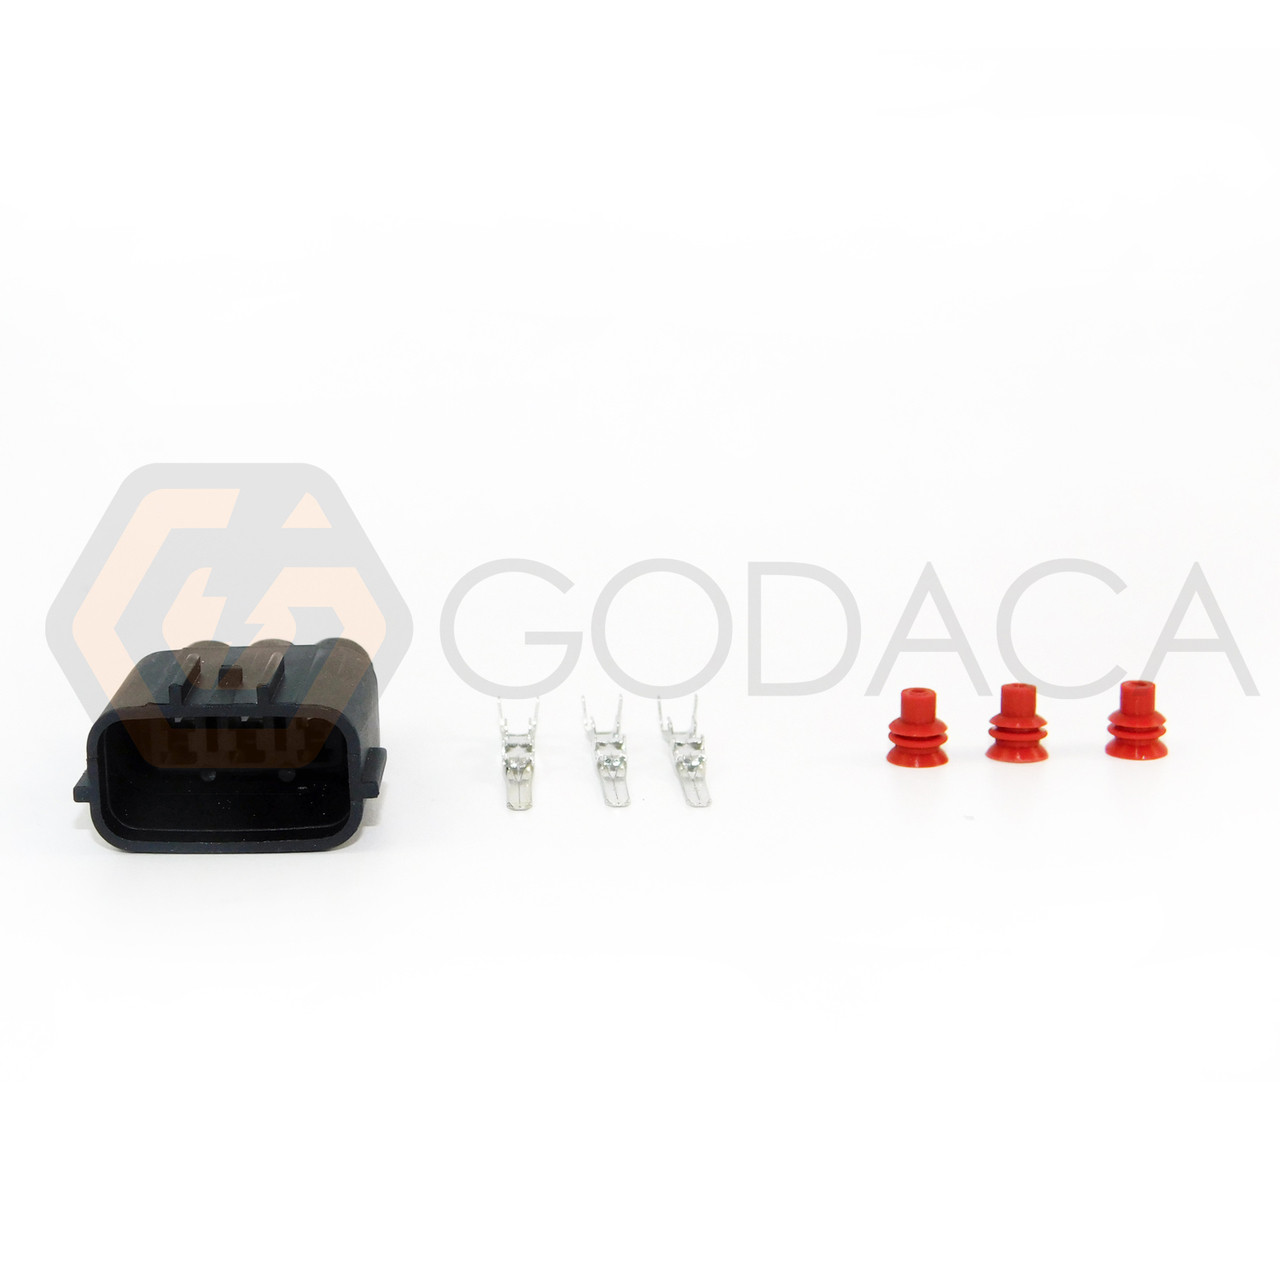 1x male connector for mazda nissan 3 pin coil plug rb25 sr20 w out 1x male connector for mazda nissan 3 pin coil plug rb25 sr20 w out wire godaca llc